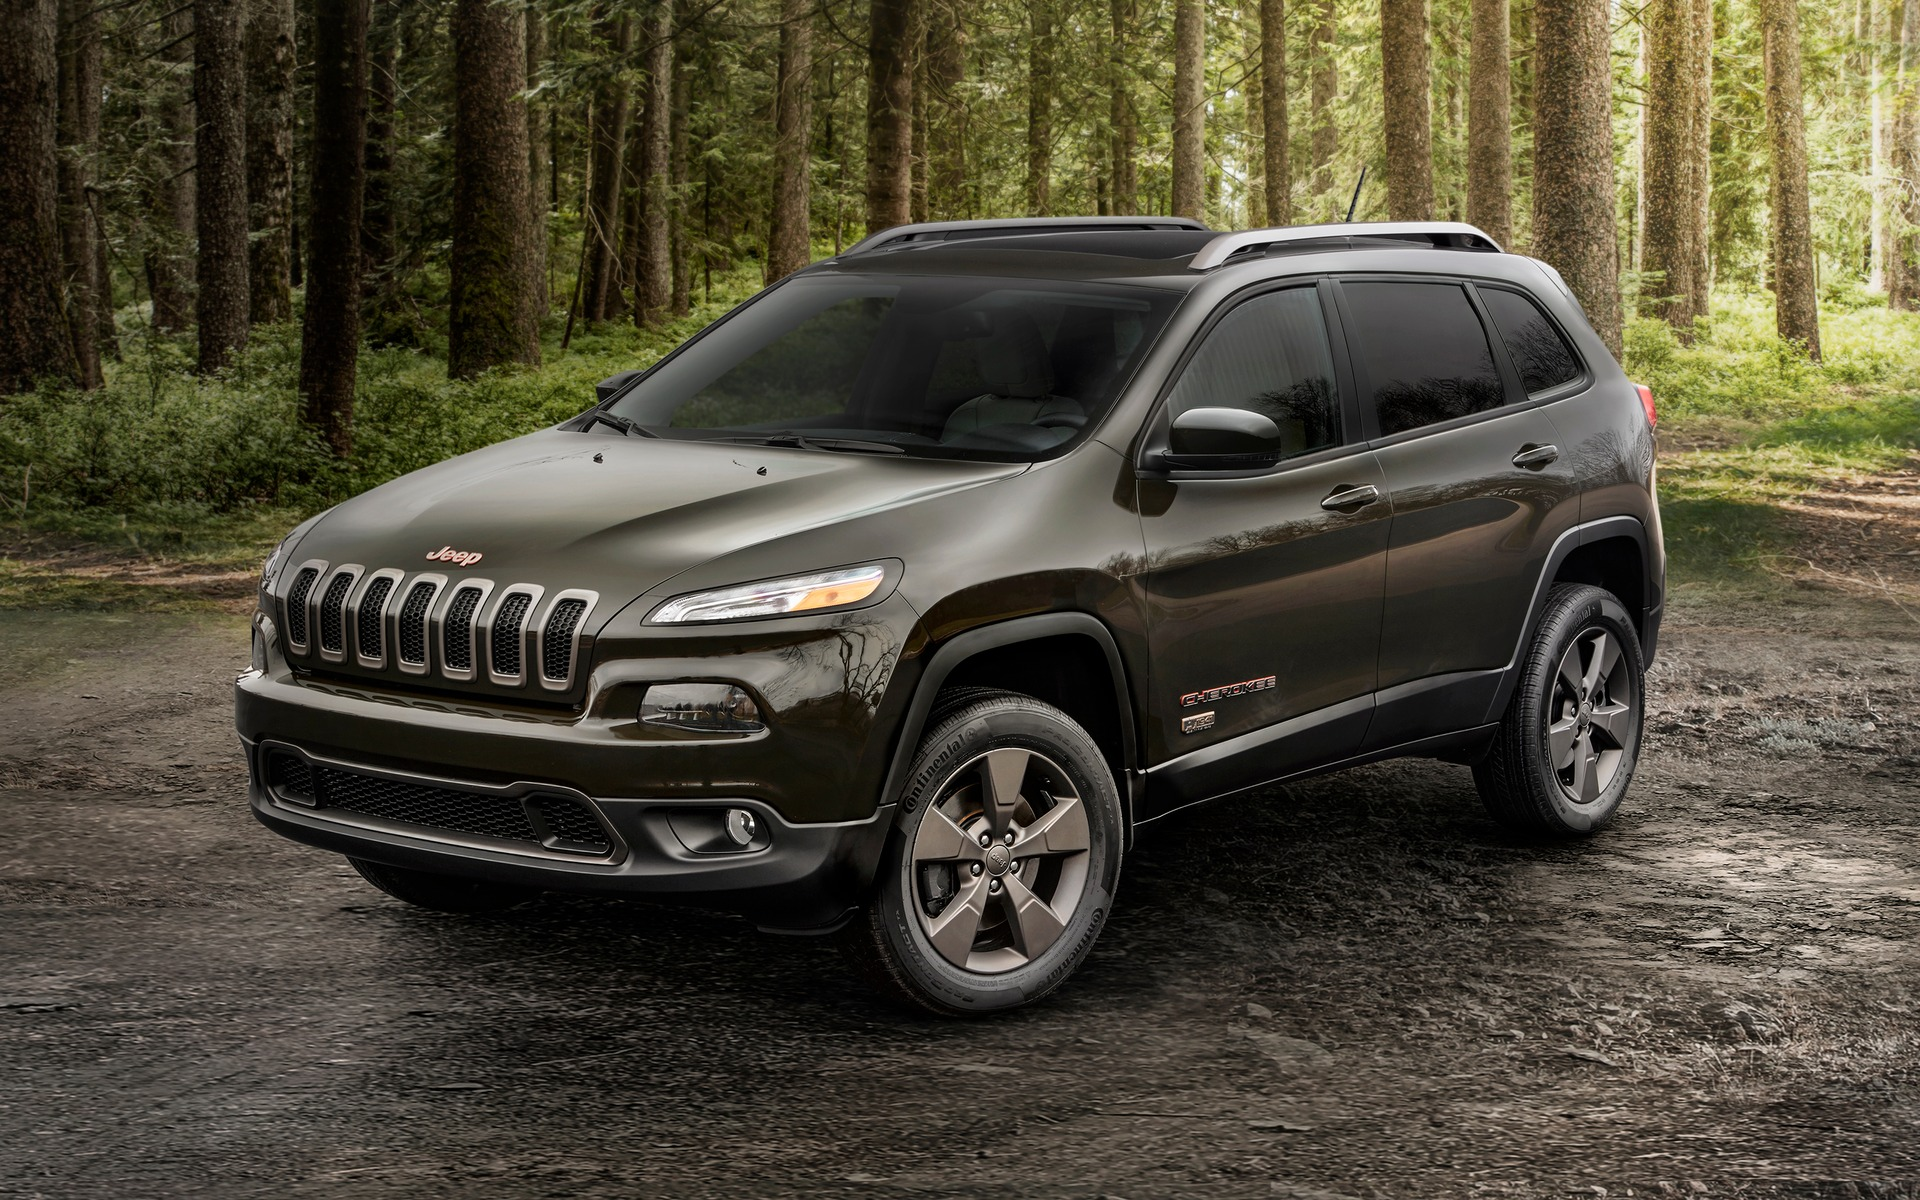 jeep cherokee desktop wallpaper 65153